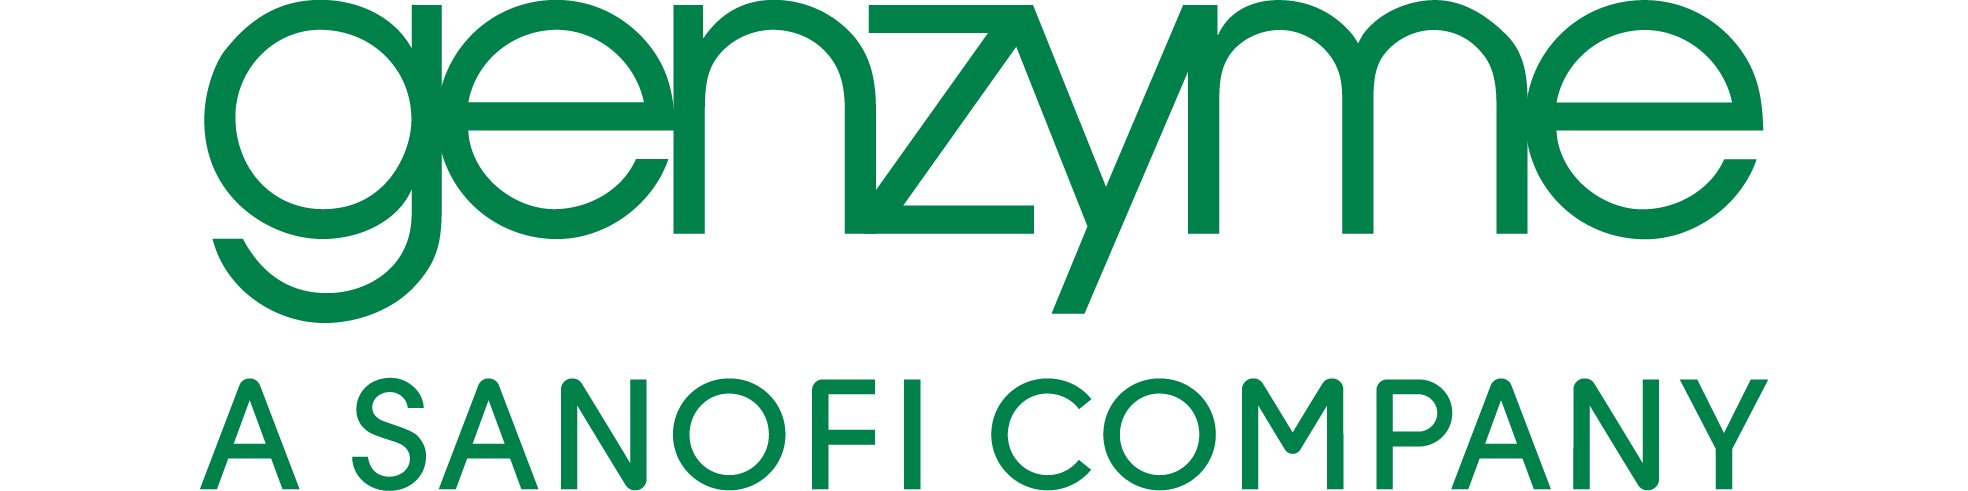 2014 genzyme